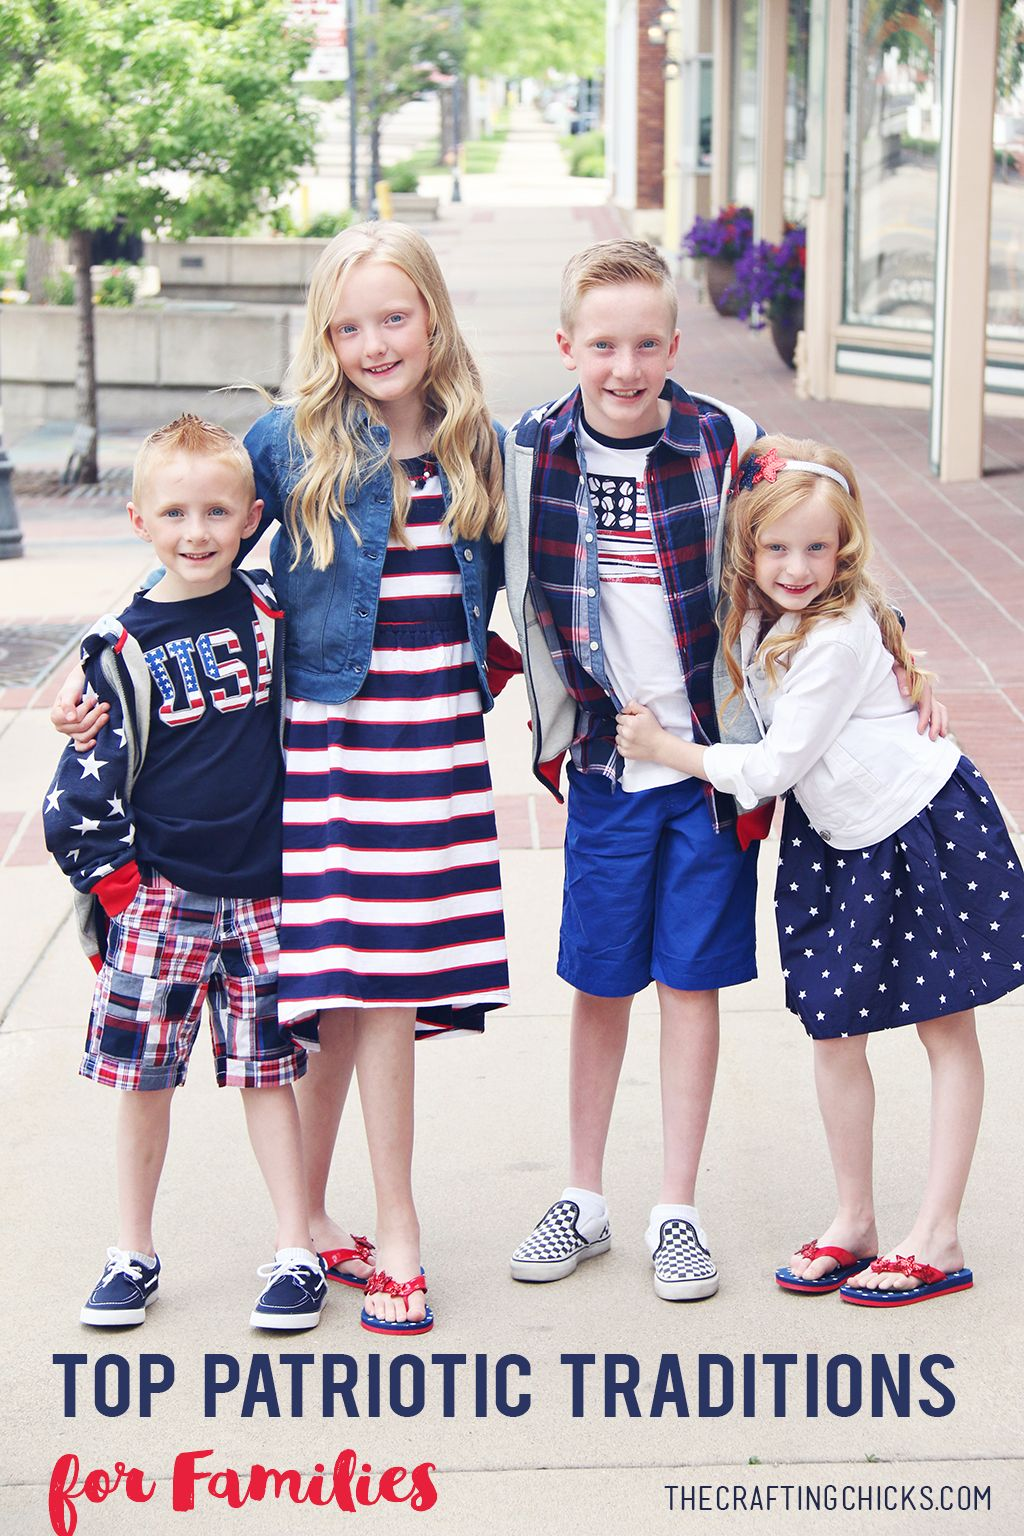 Sharing our Top Patriotic Traditions for Families. Fun ideas for those family activities from memorial day to labor day. Patriotic ideas to inspire you!